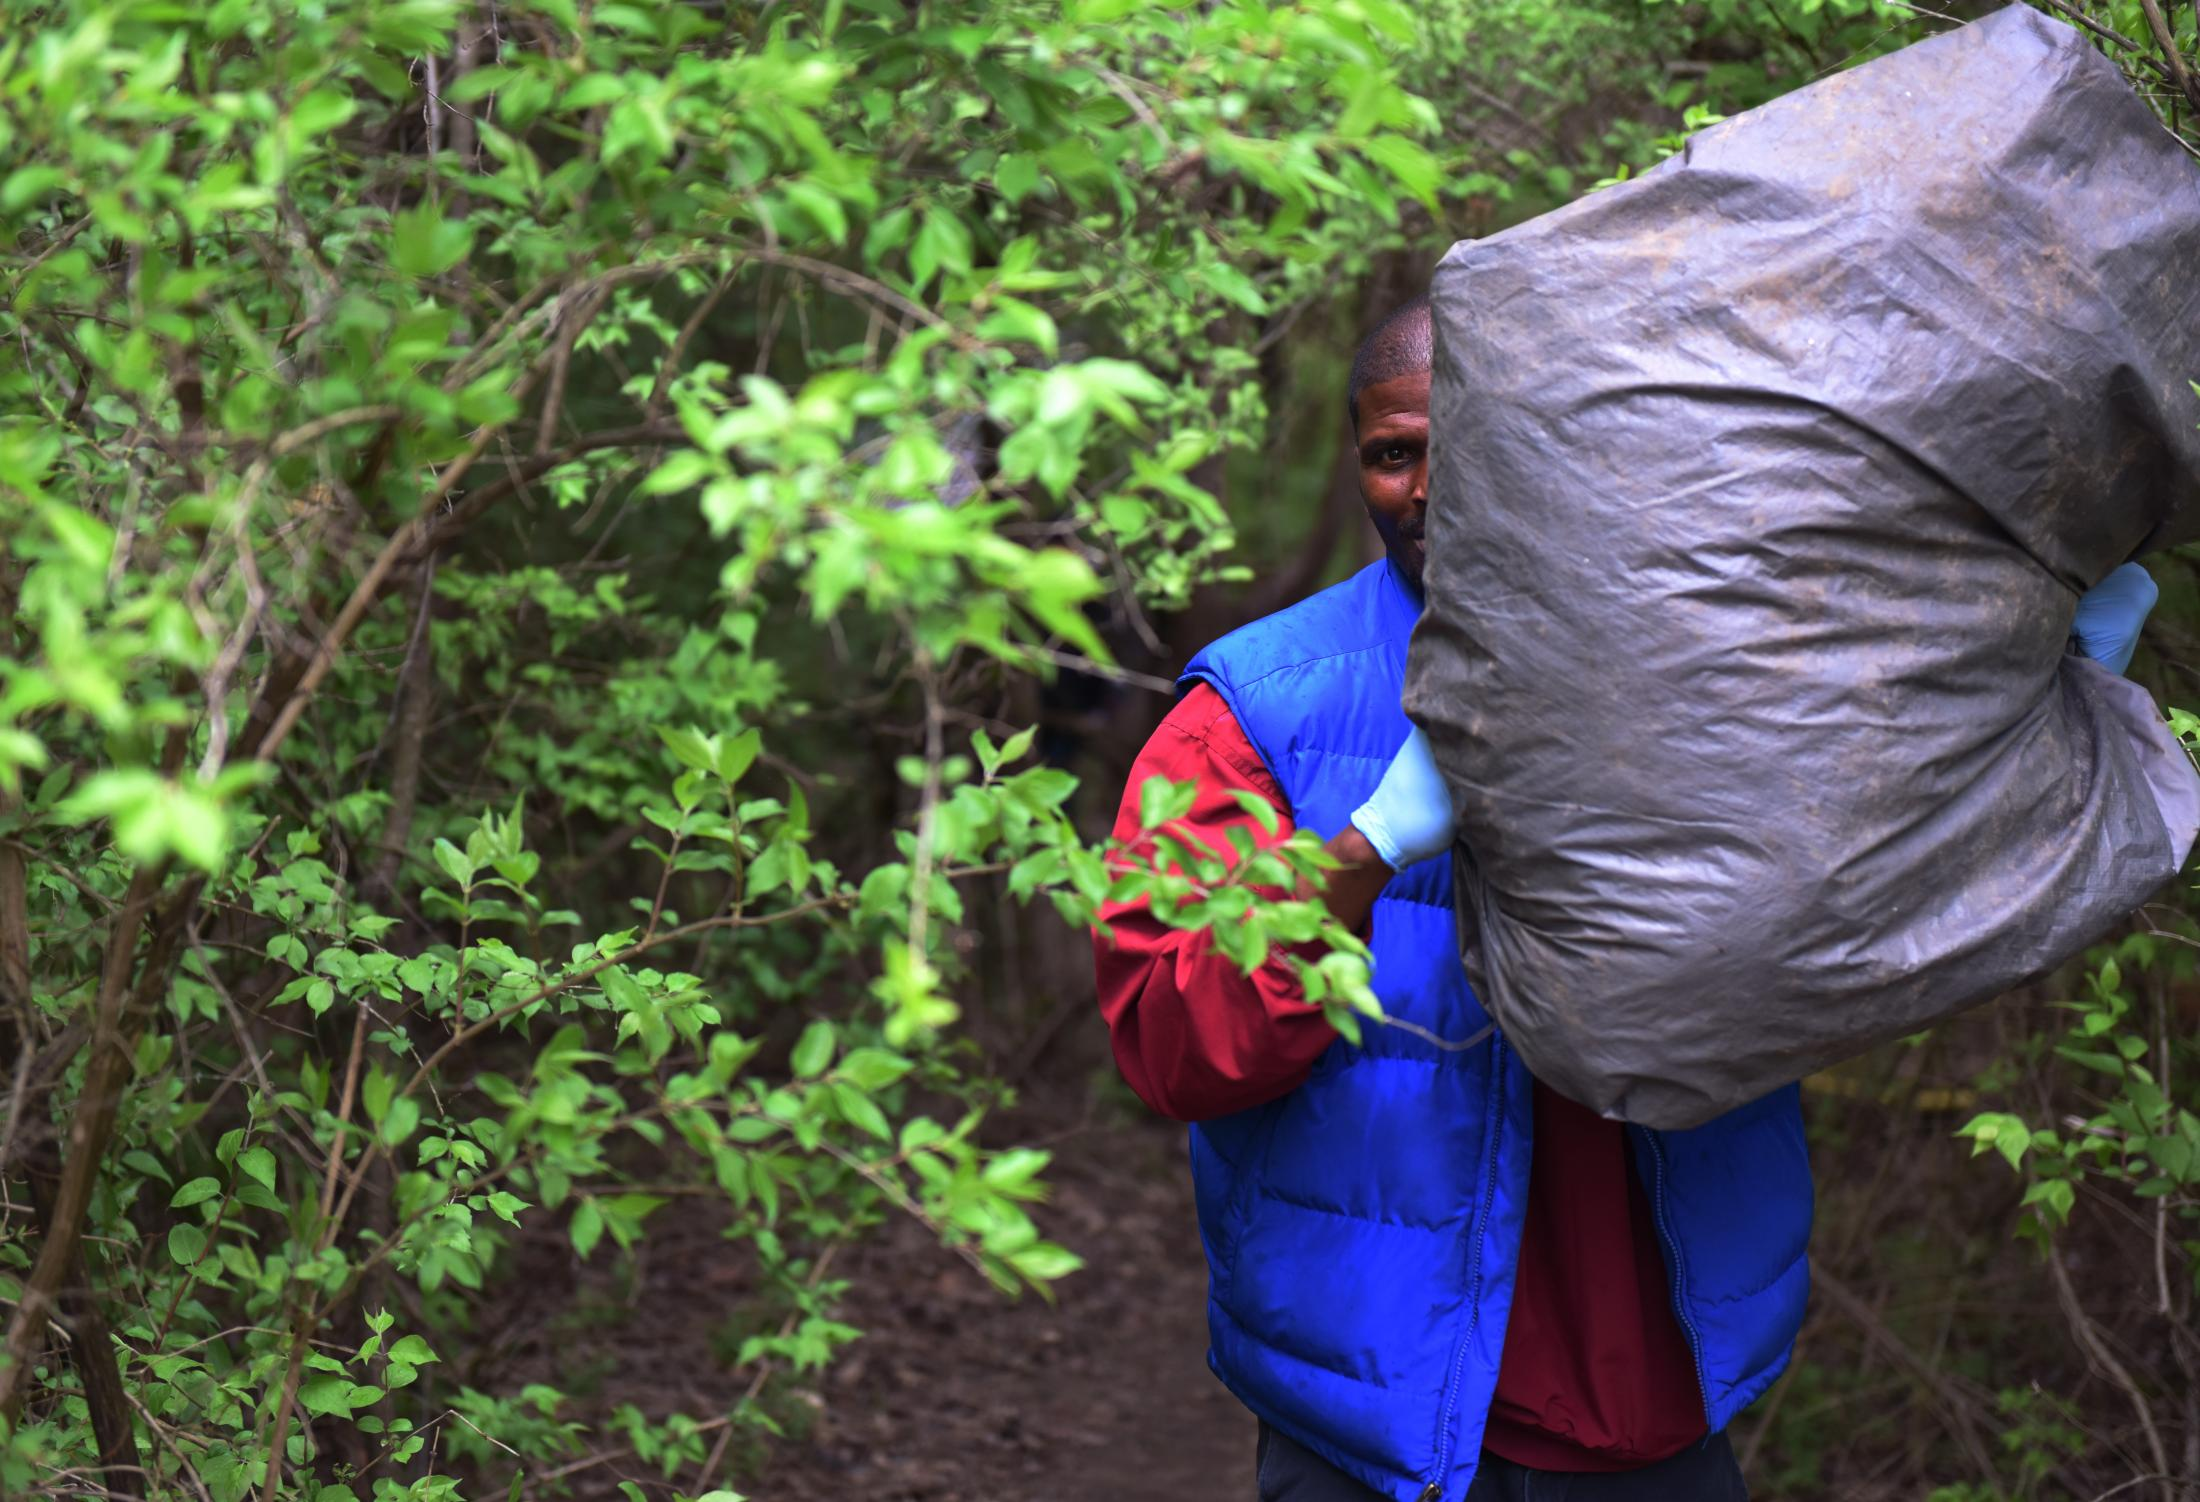 """A volunteer who goes by Kee carries trash from an abandoned campsite April 11. Kee said he doesn't define himself as homeless because his home is wherever he is. """"I think the responsibility falls on us as a community,"""" Kee said. """"Every last one of us has the power to change our circumstances. People shouldn't have to live like this."""""""